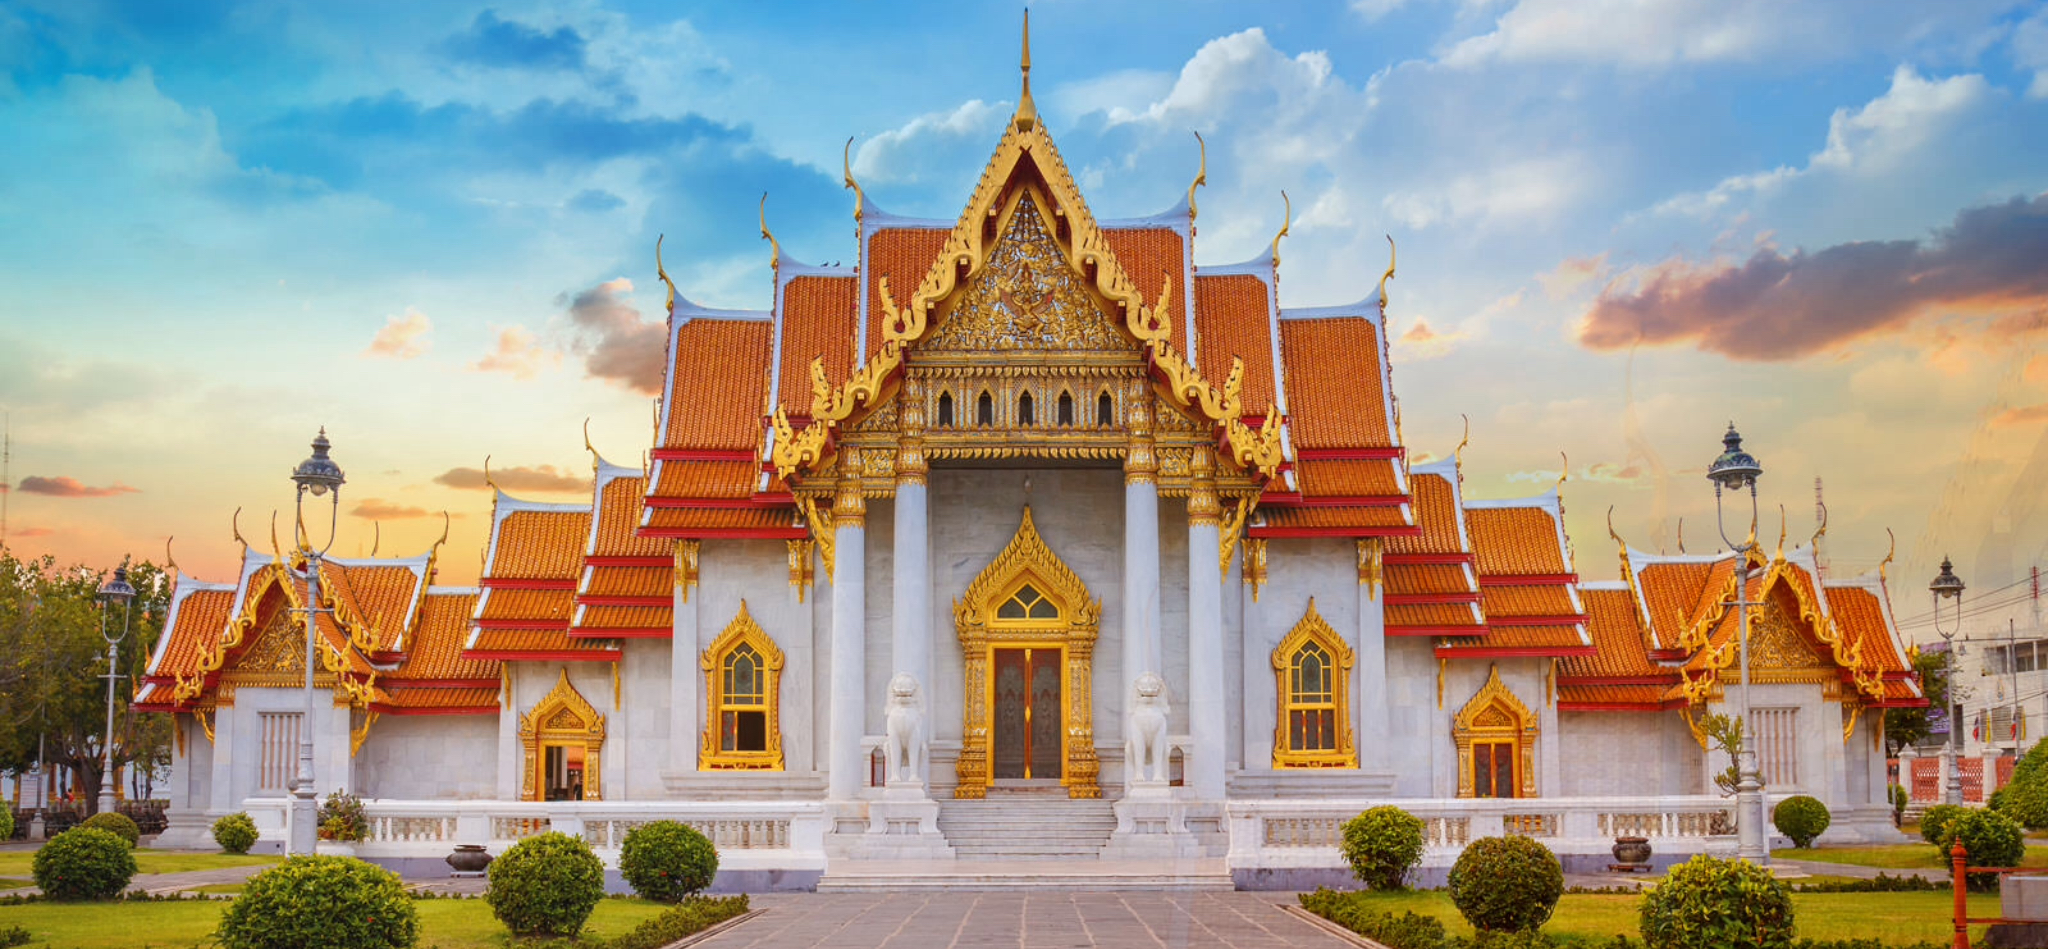 Wat Benchamabophit, also known as the marble temple, in the Dusit neighborhood in Bangkok.